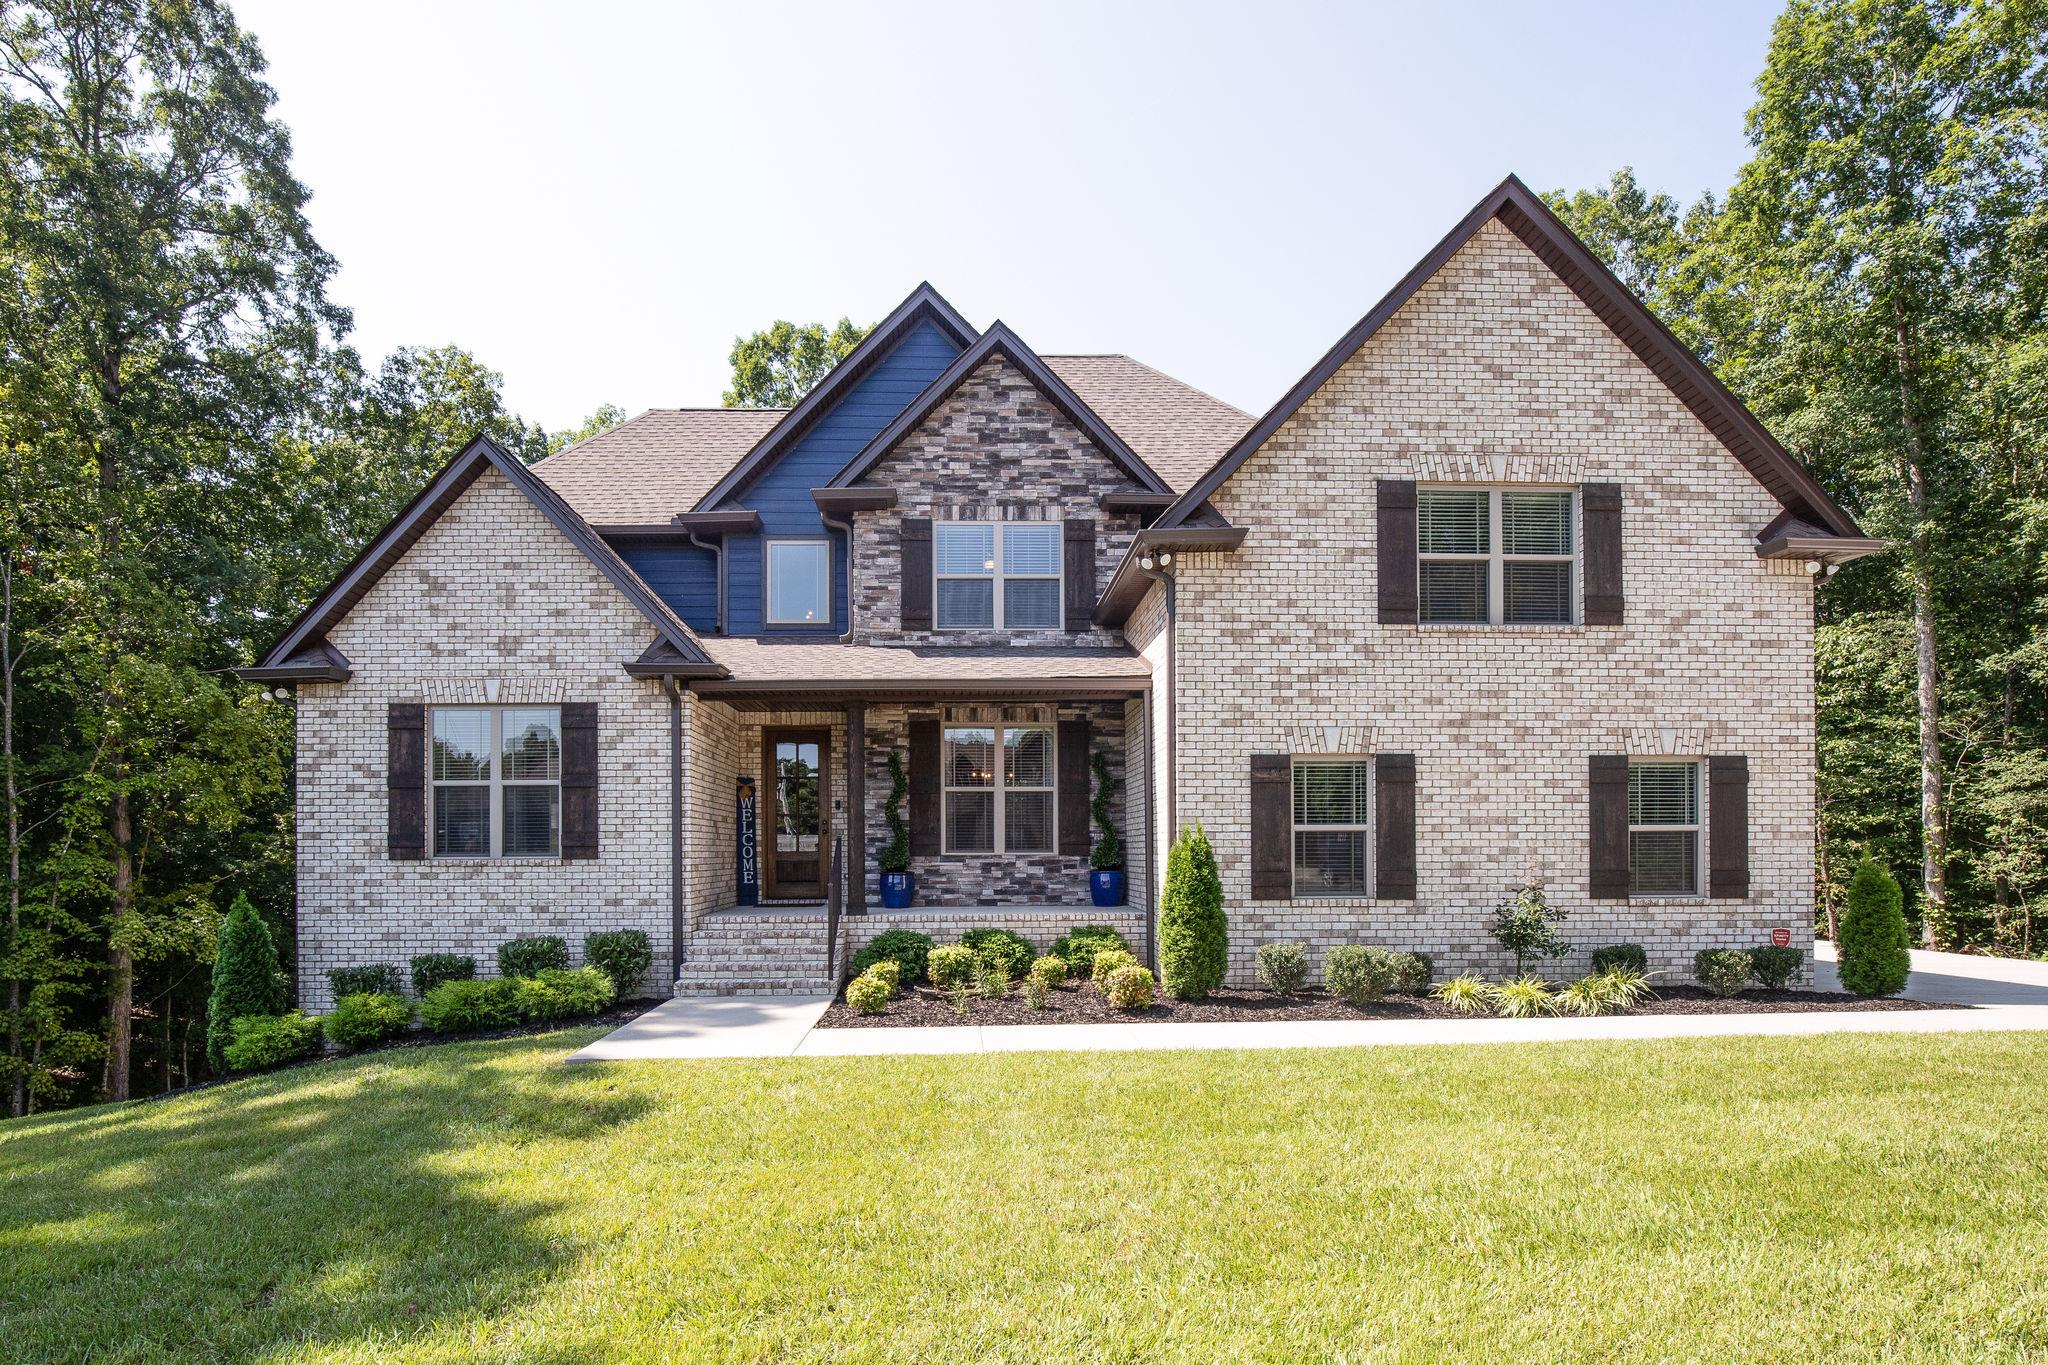 4340 Sheffield Ln, Greenbrier, TN 37073 - Greenbrier, TN real estate listing